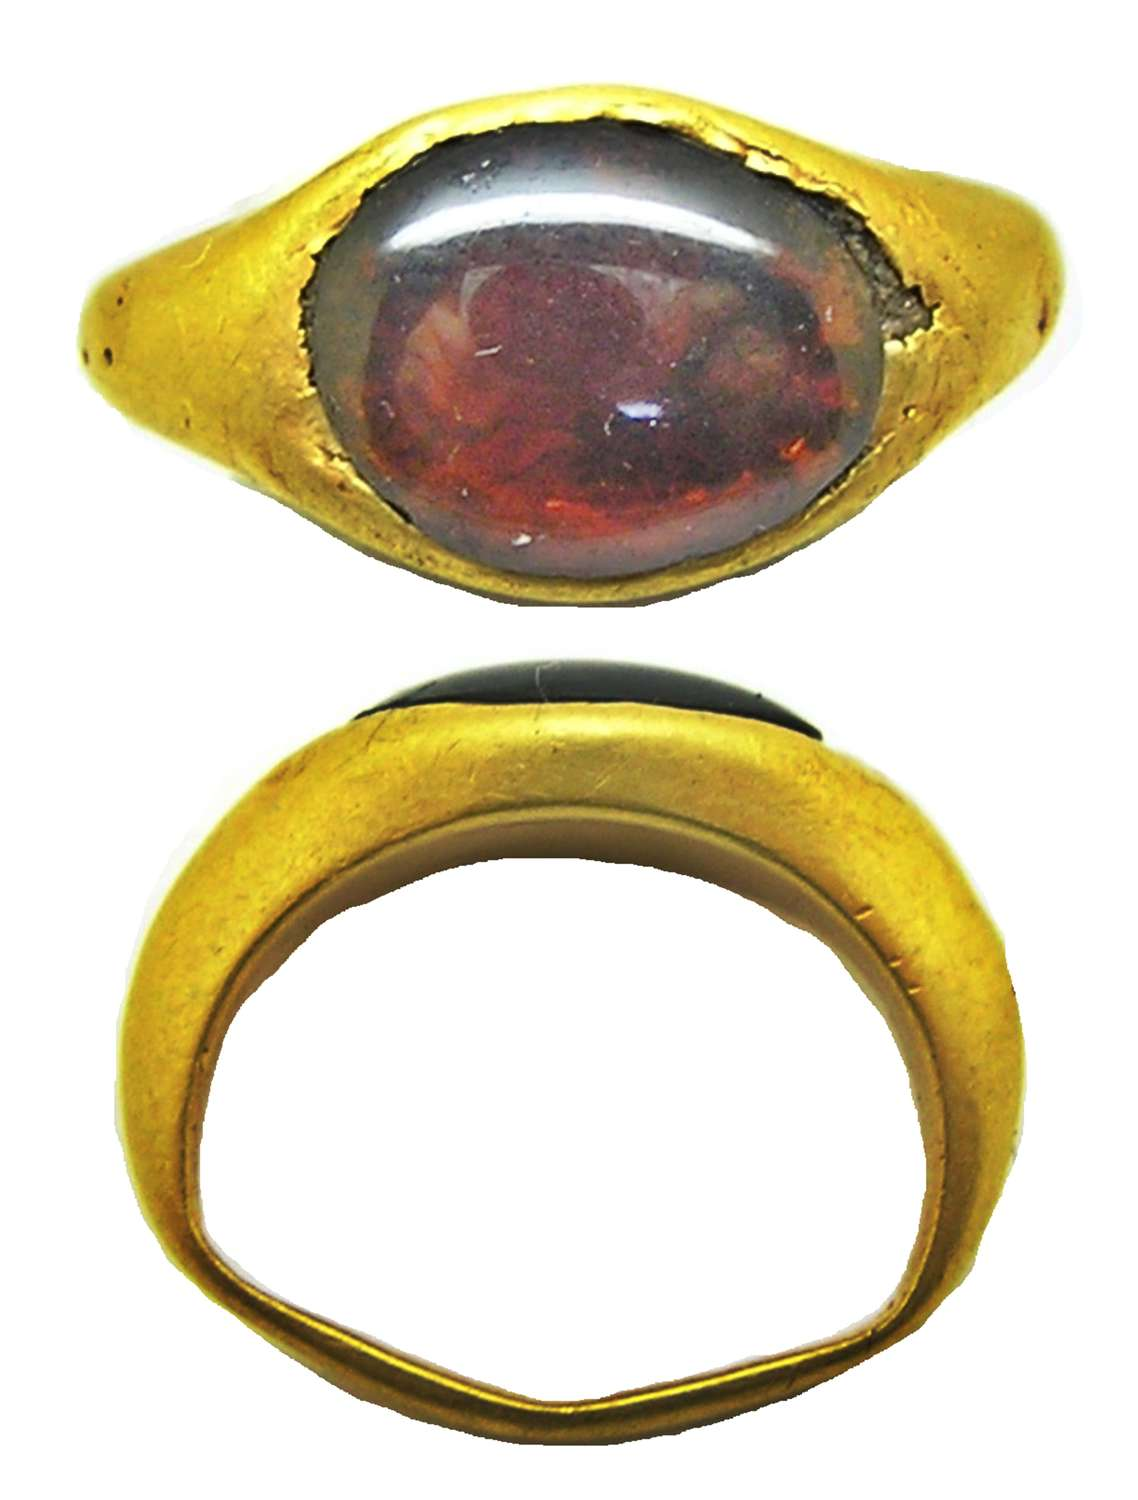 Hellenistic gold and garnet finger ring